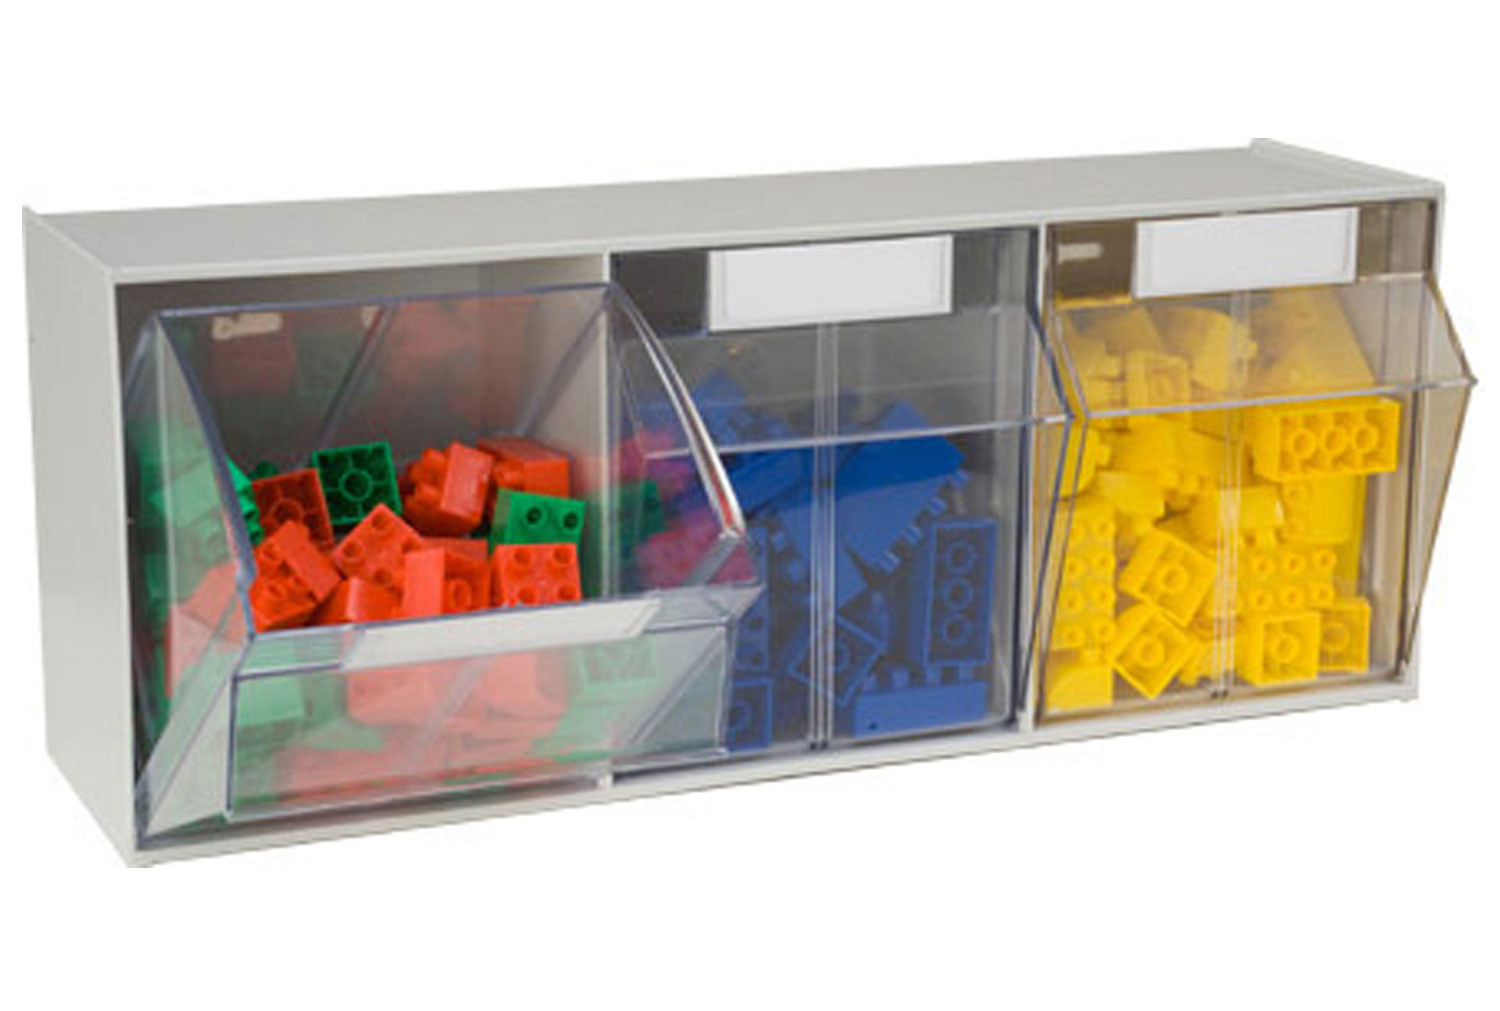 Tilted front storage bins with 3 sections